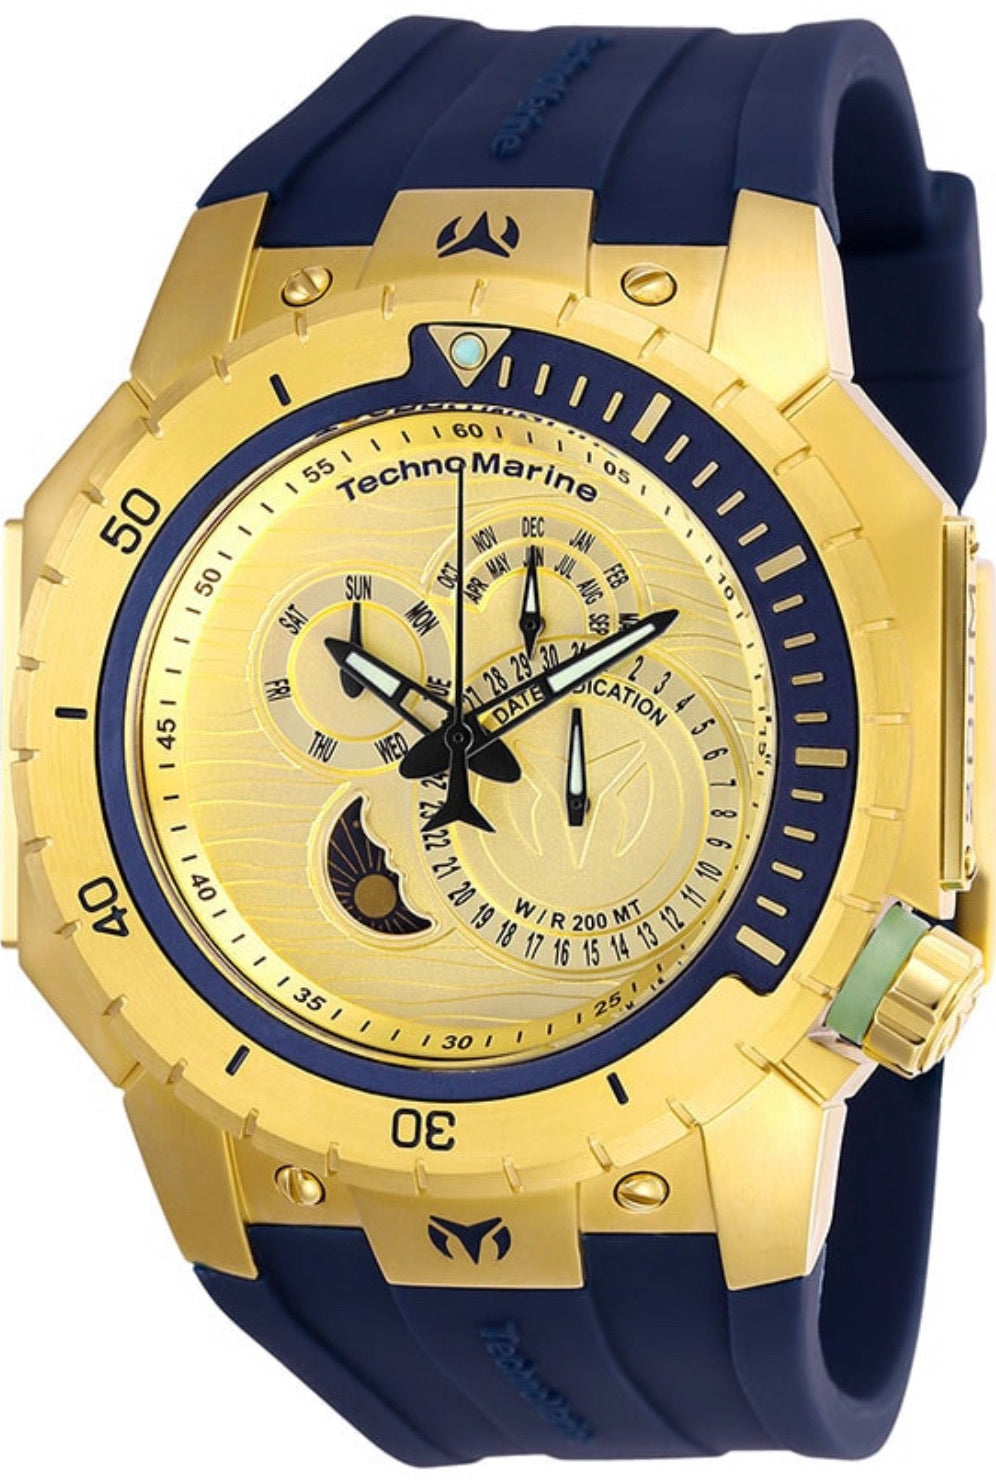 TECHNOMARINE MANTA MENS QUARTZ 48.8MM STAINLESS STEEL BLUE CASE METAL DIAL - MODEL TM-216010 - Boutique Watches & More